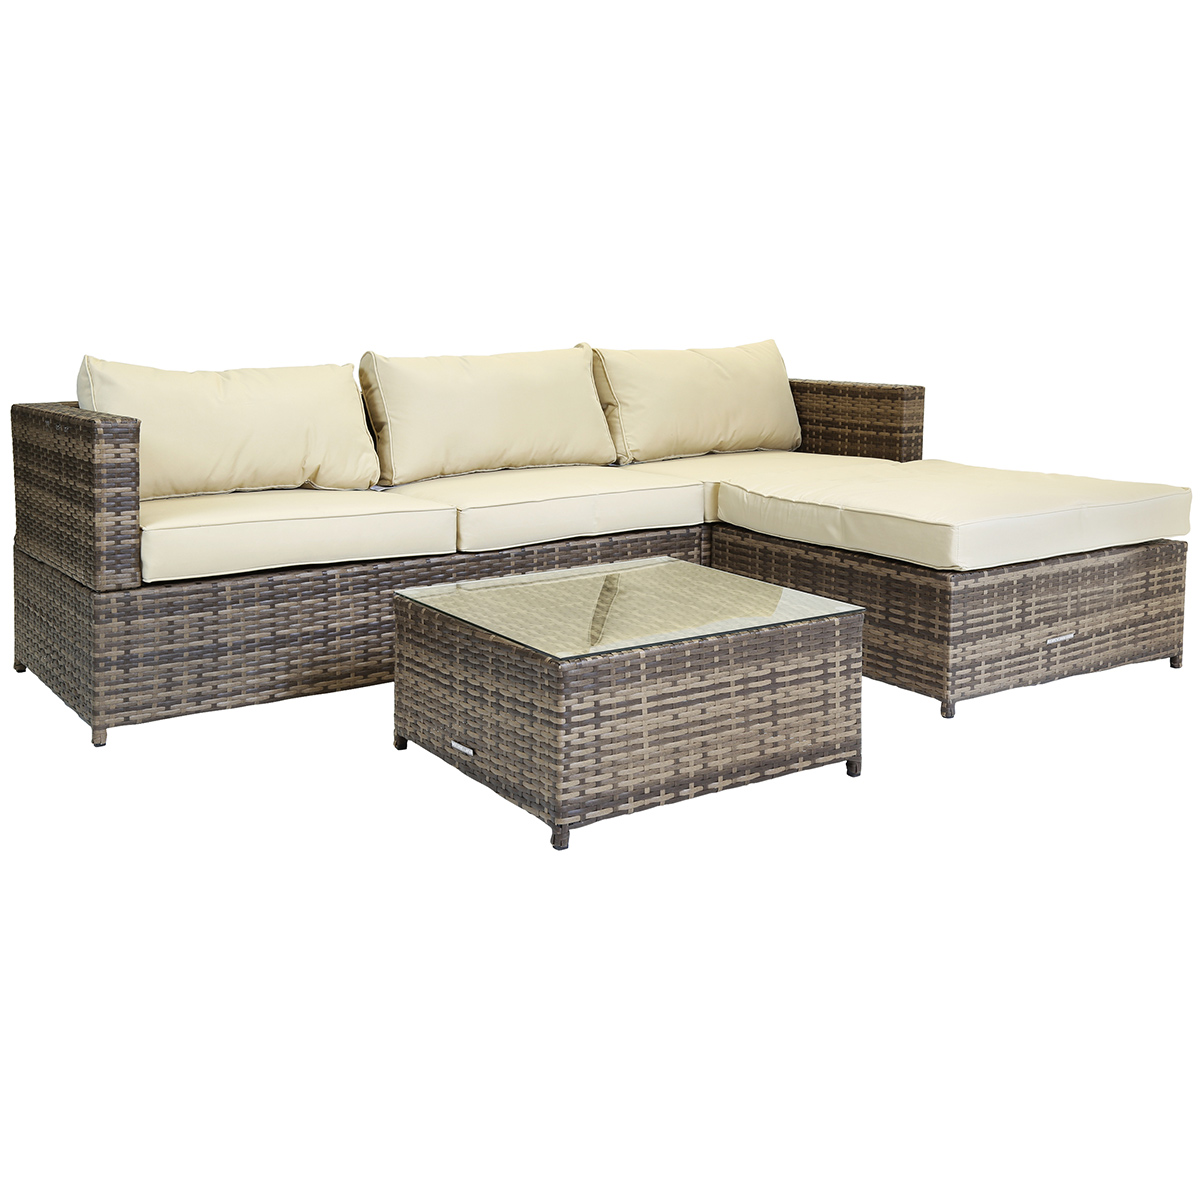 L Shaped 3 Seater Outdoor Rattan Furniture Lounge Set Brown